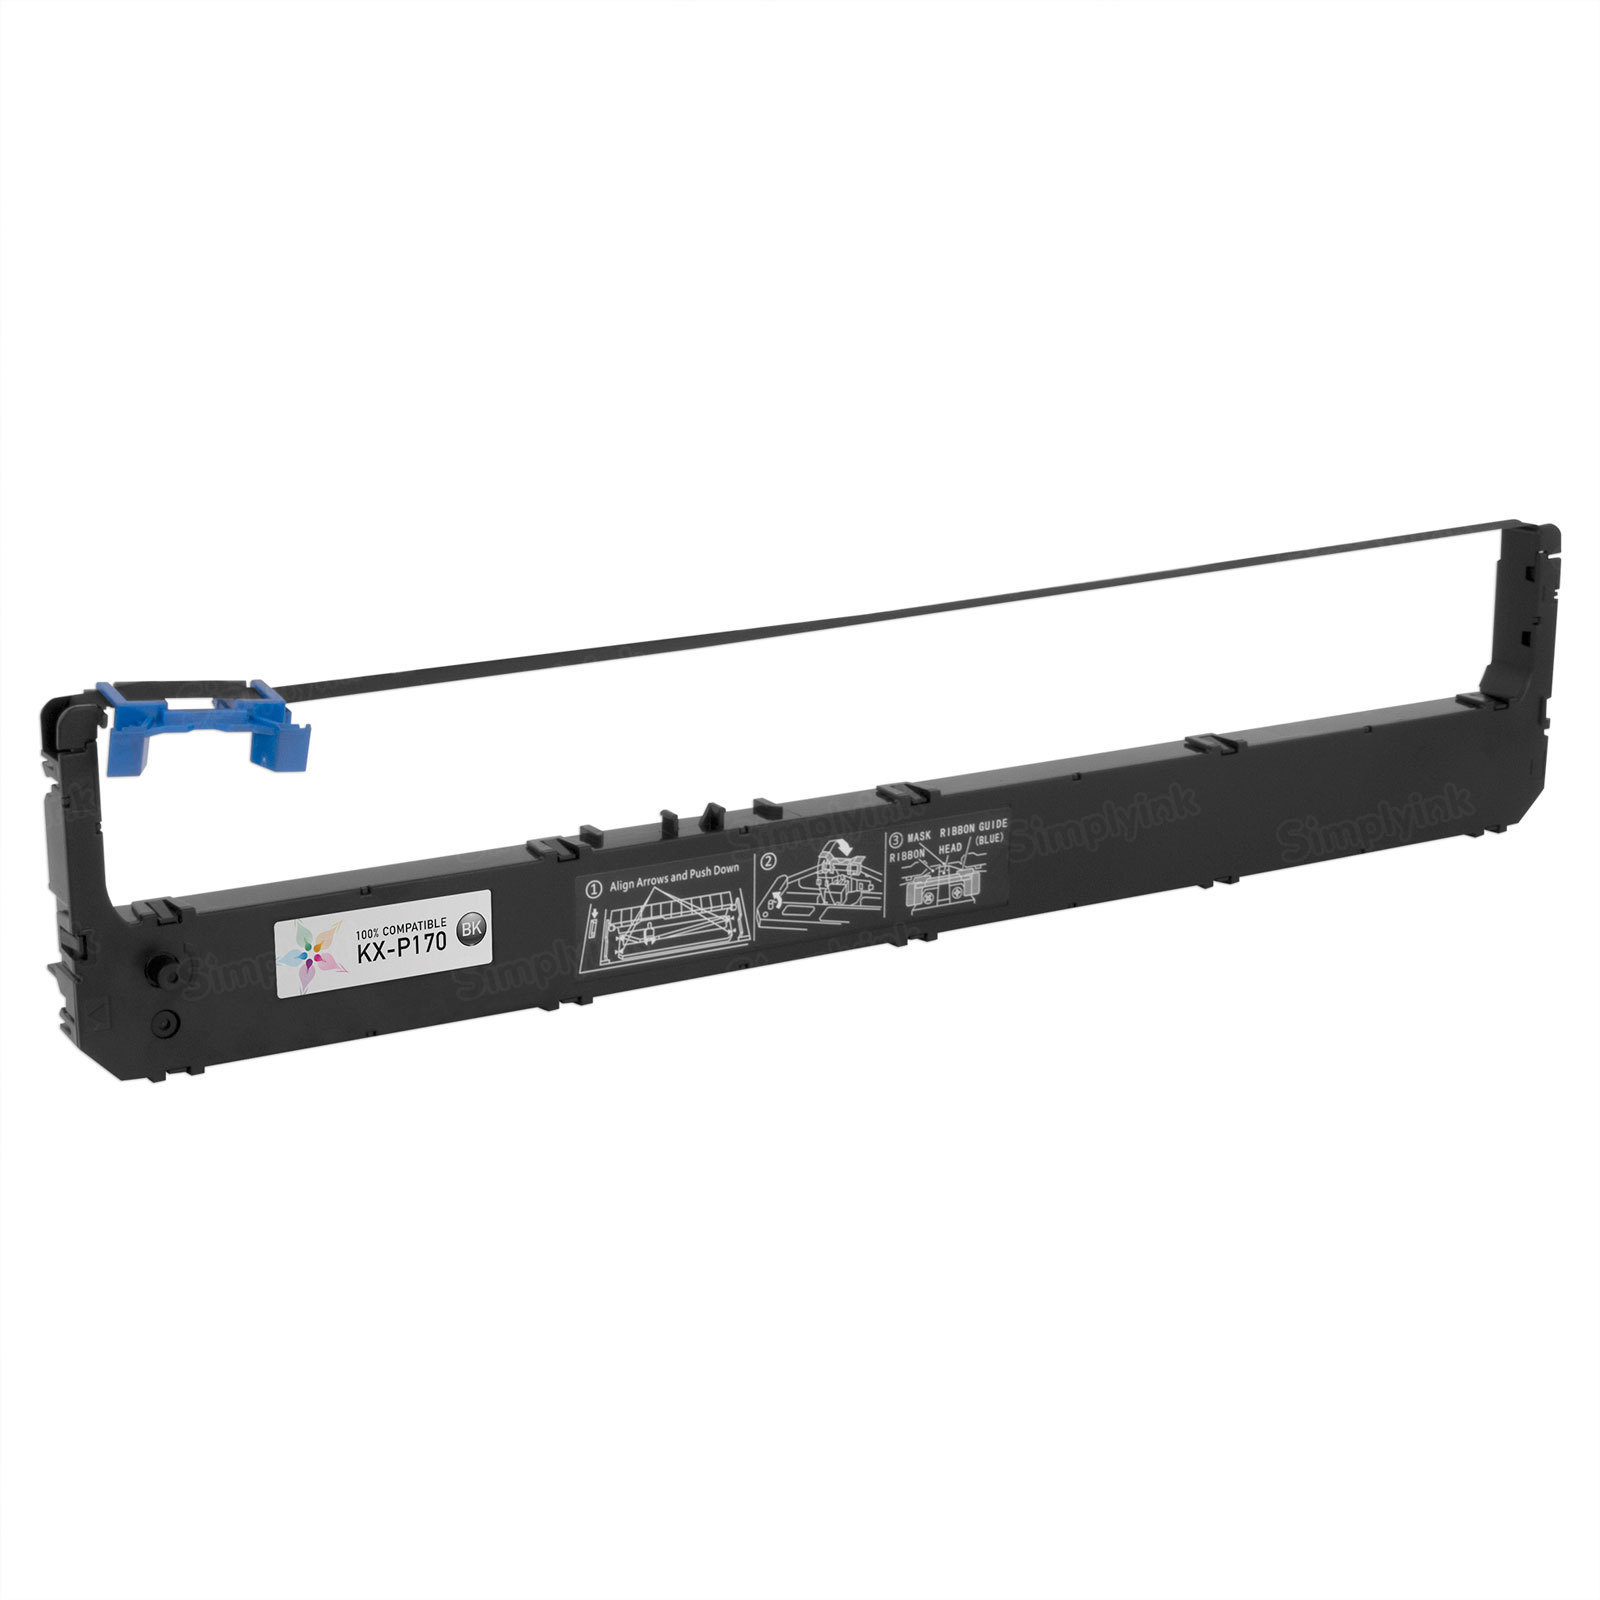 Panasonic Compatible Black KX-P170 Ribbon